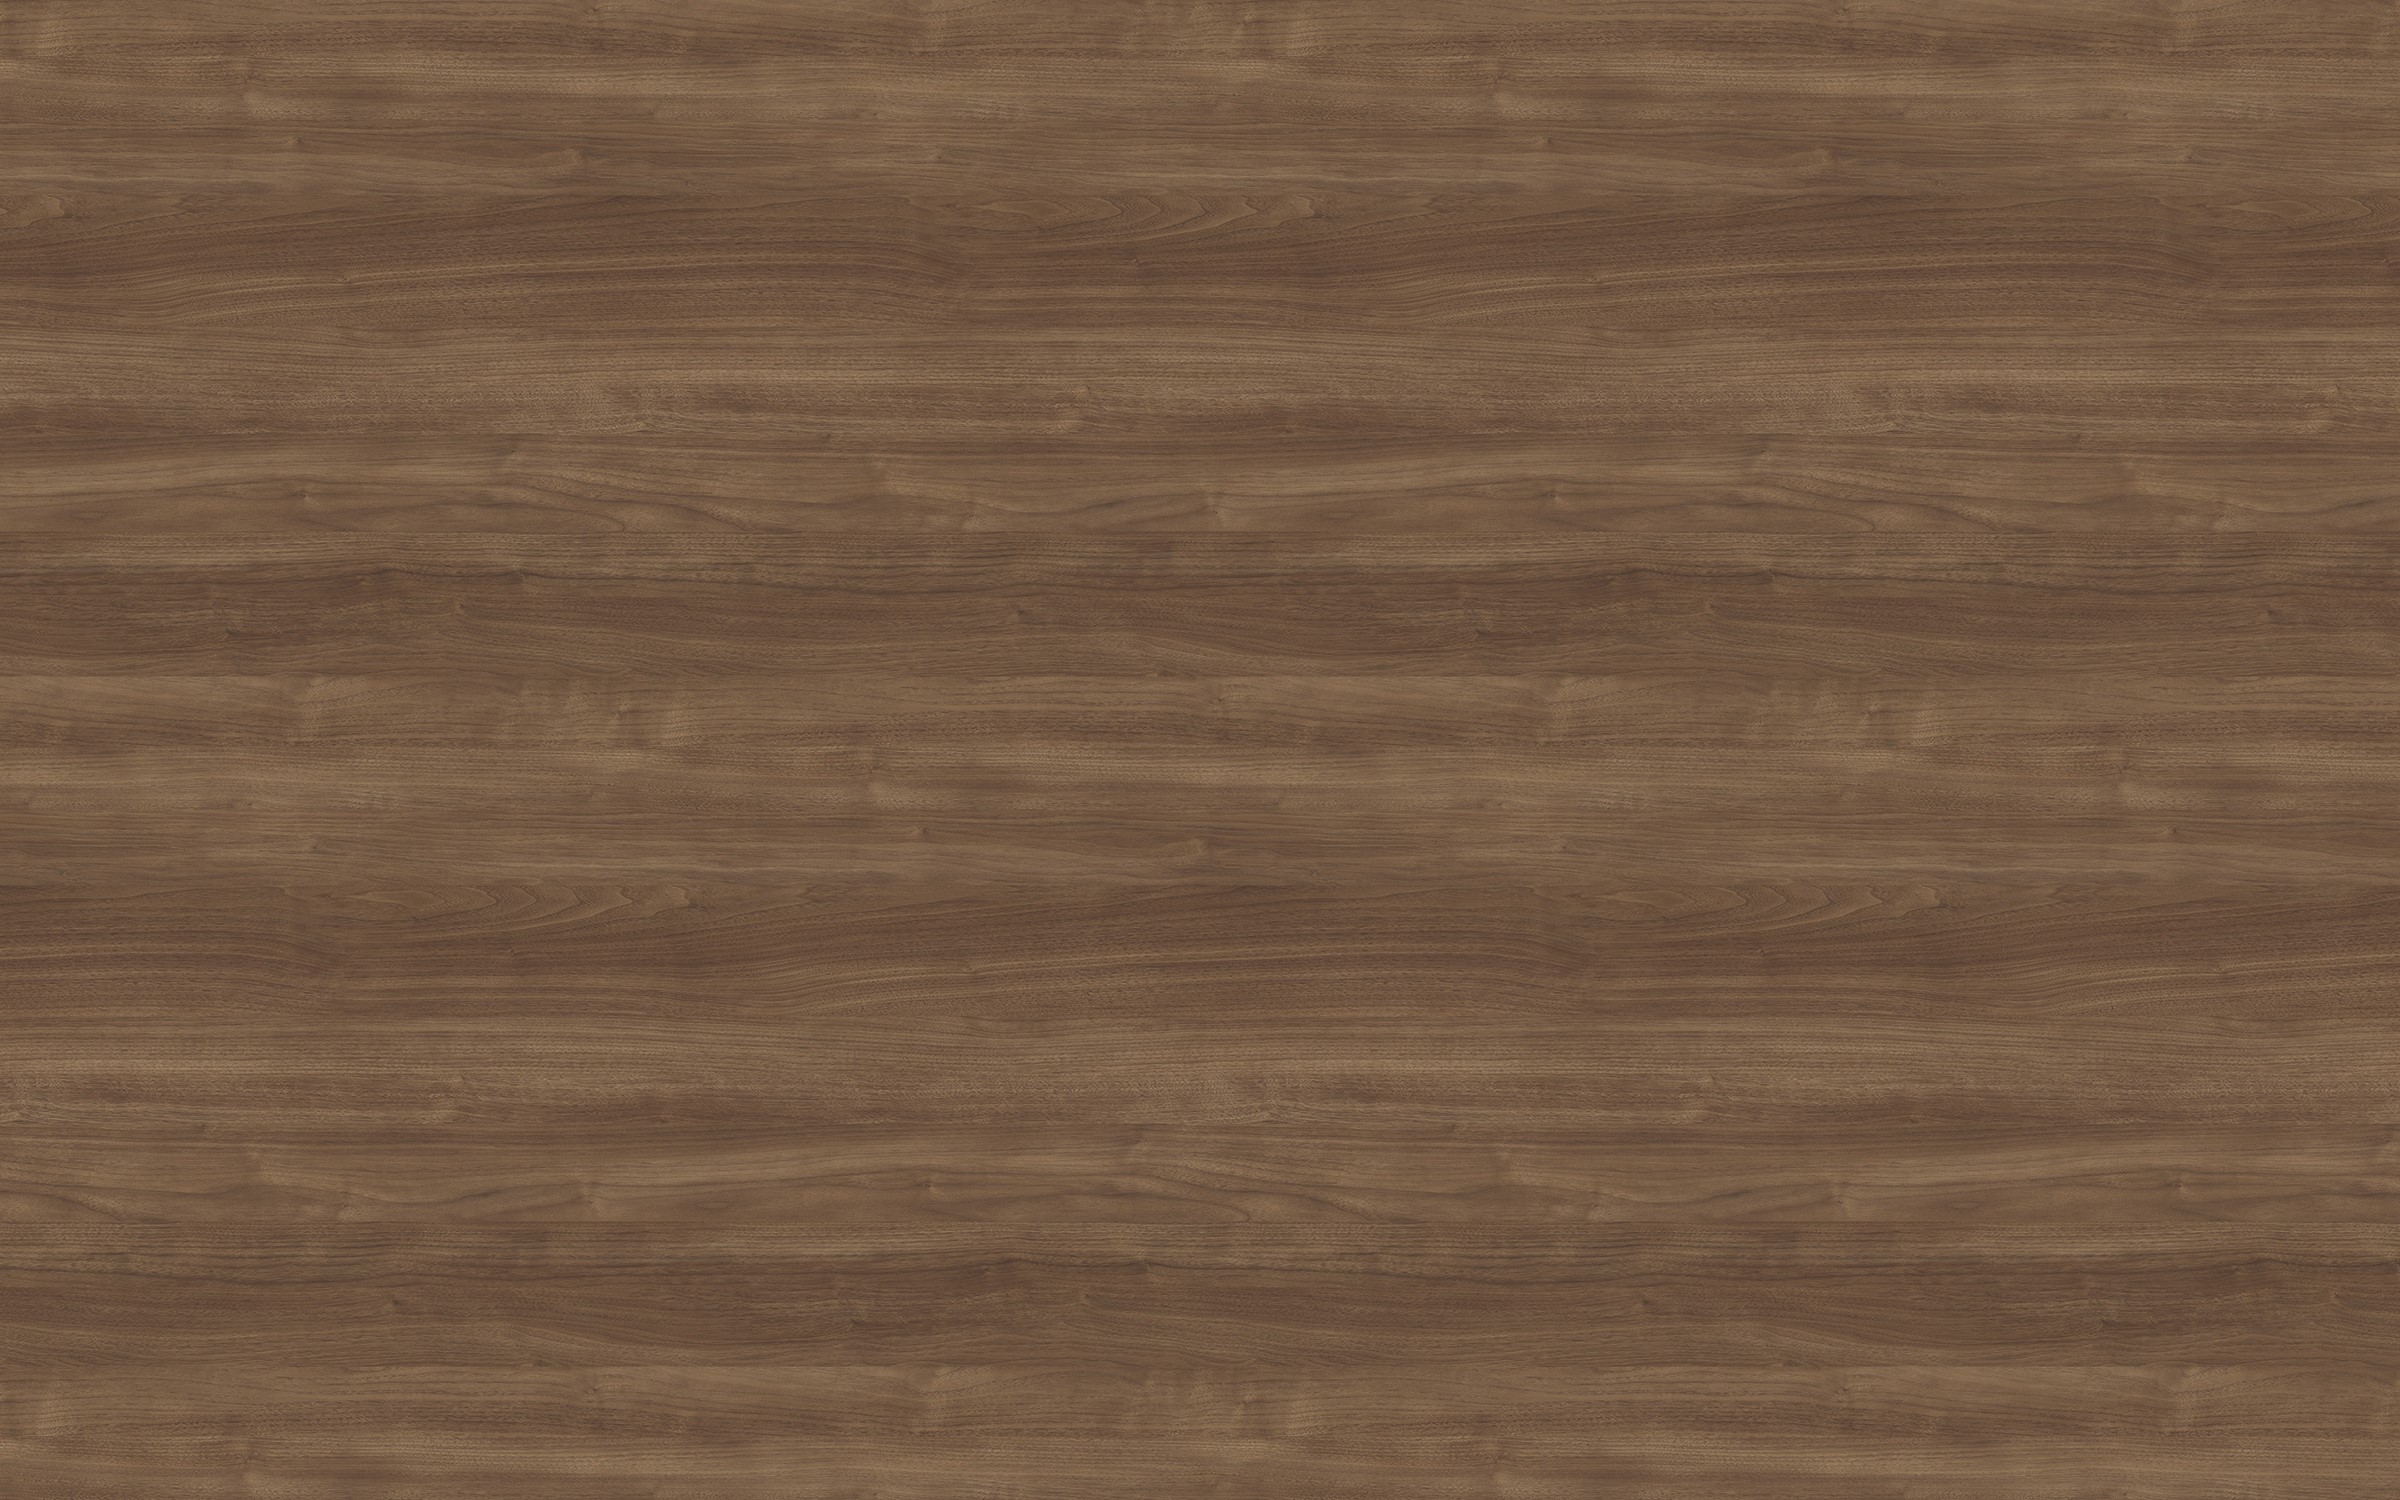 7992-38 | Pinnacle Walnut